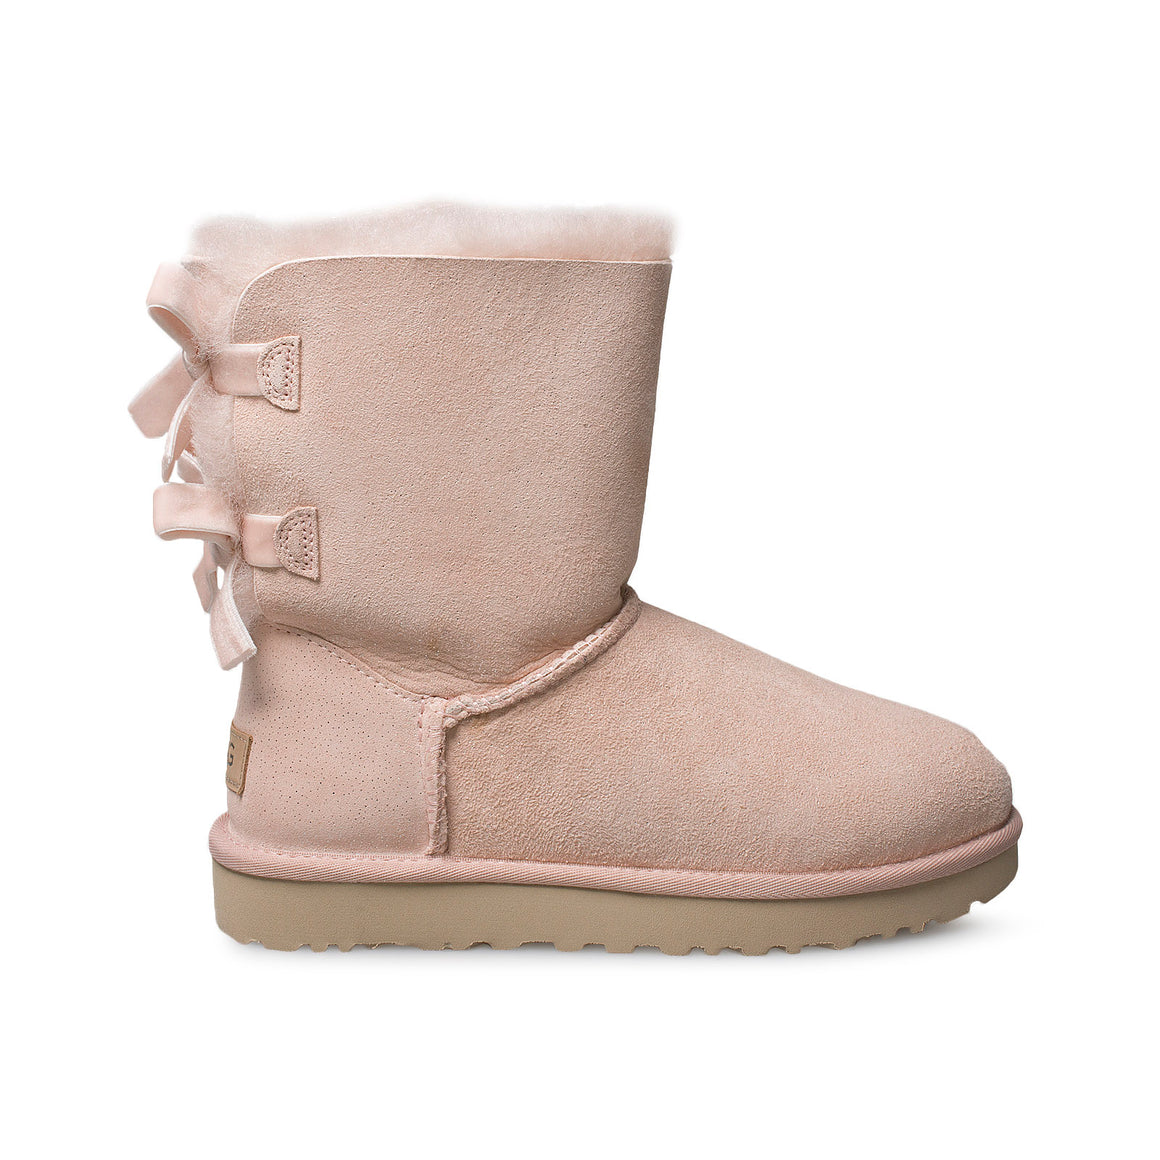 UGG Bailey Bow II Twinkle Quartz Boots - Women's